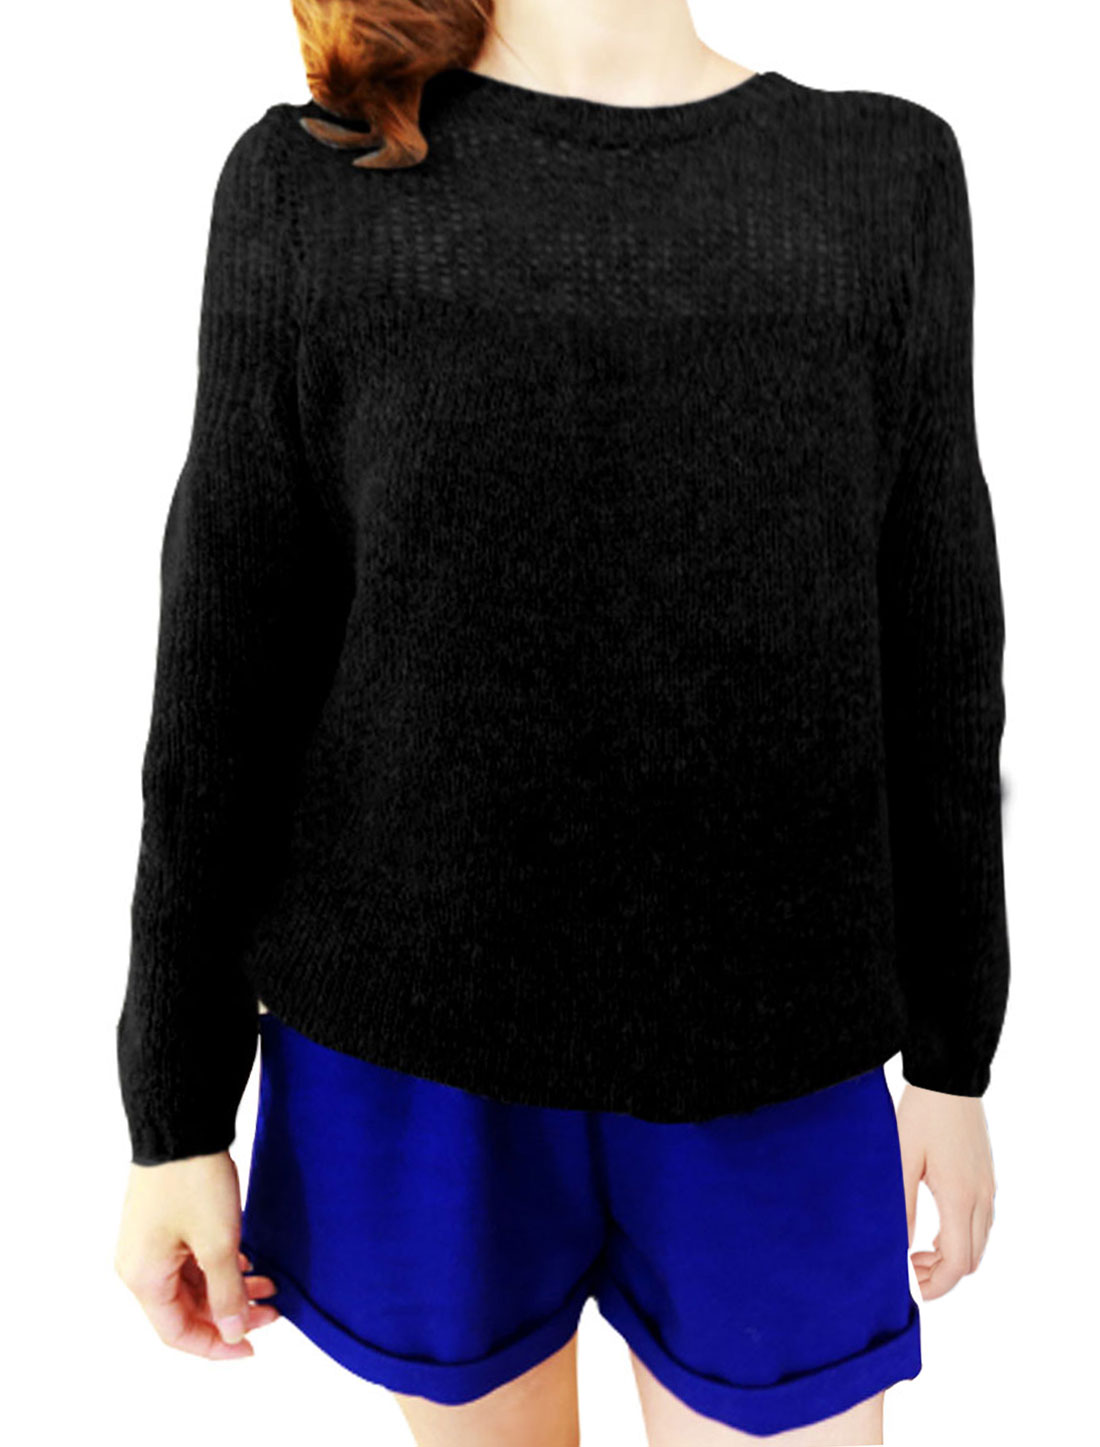 Ladies Text Ribbed Knit Hem Crewneck See Through Shoulder Sweater Solid Black M